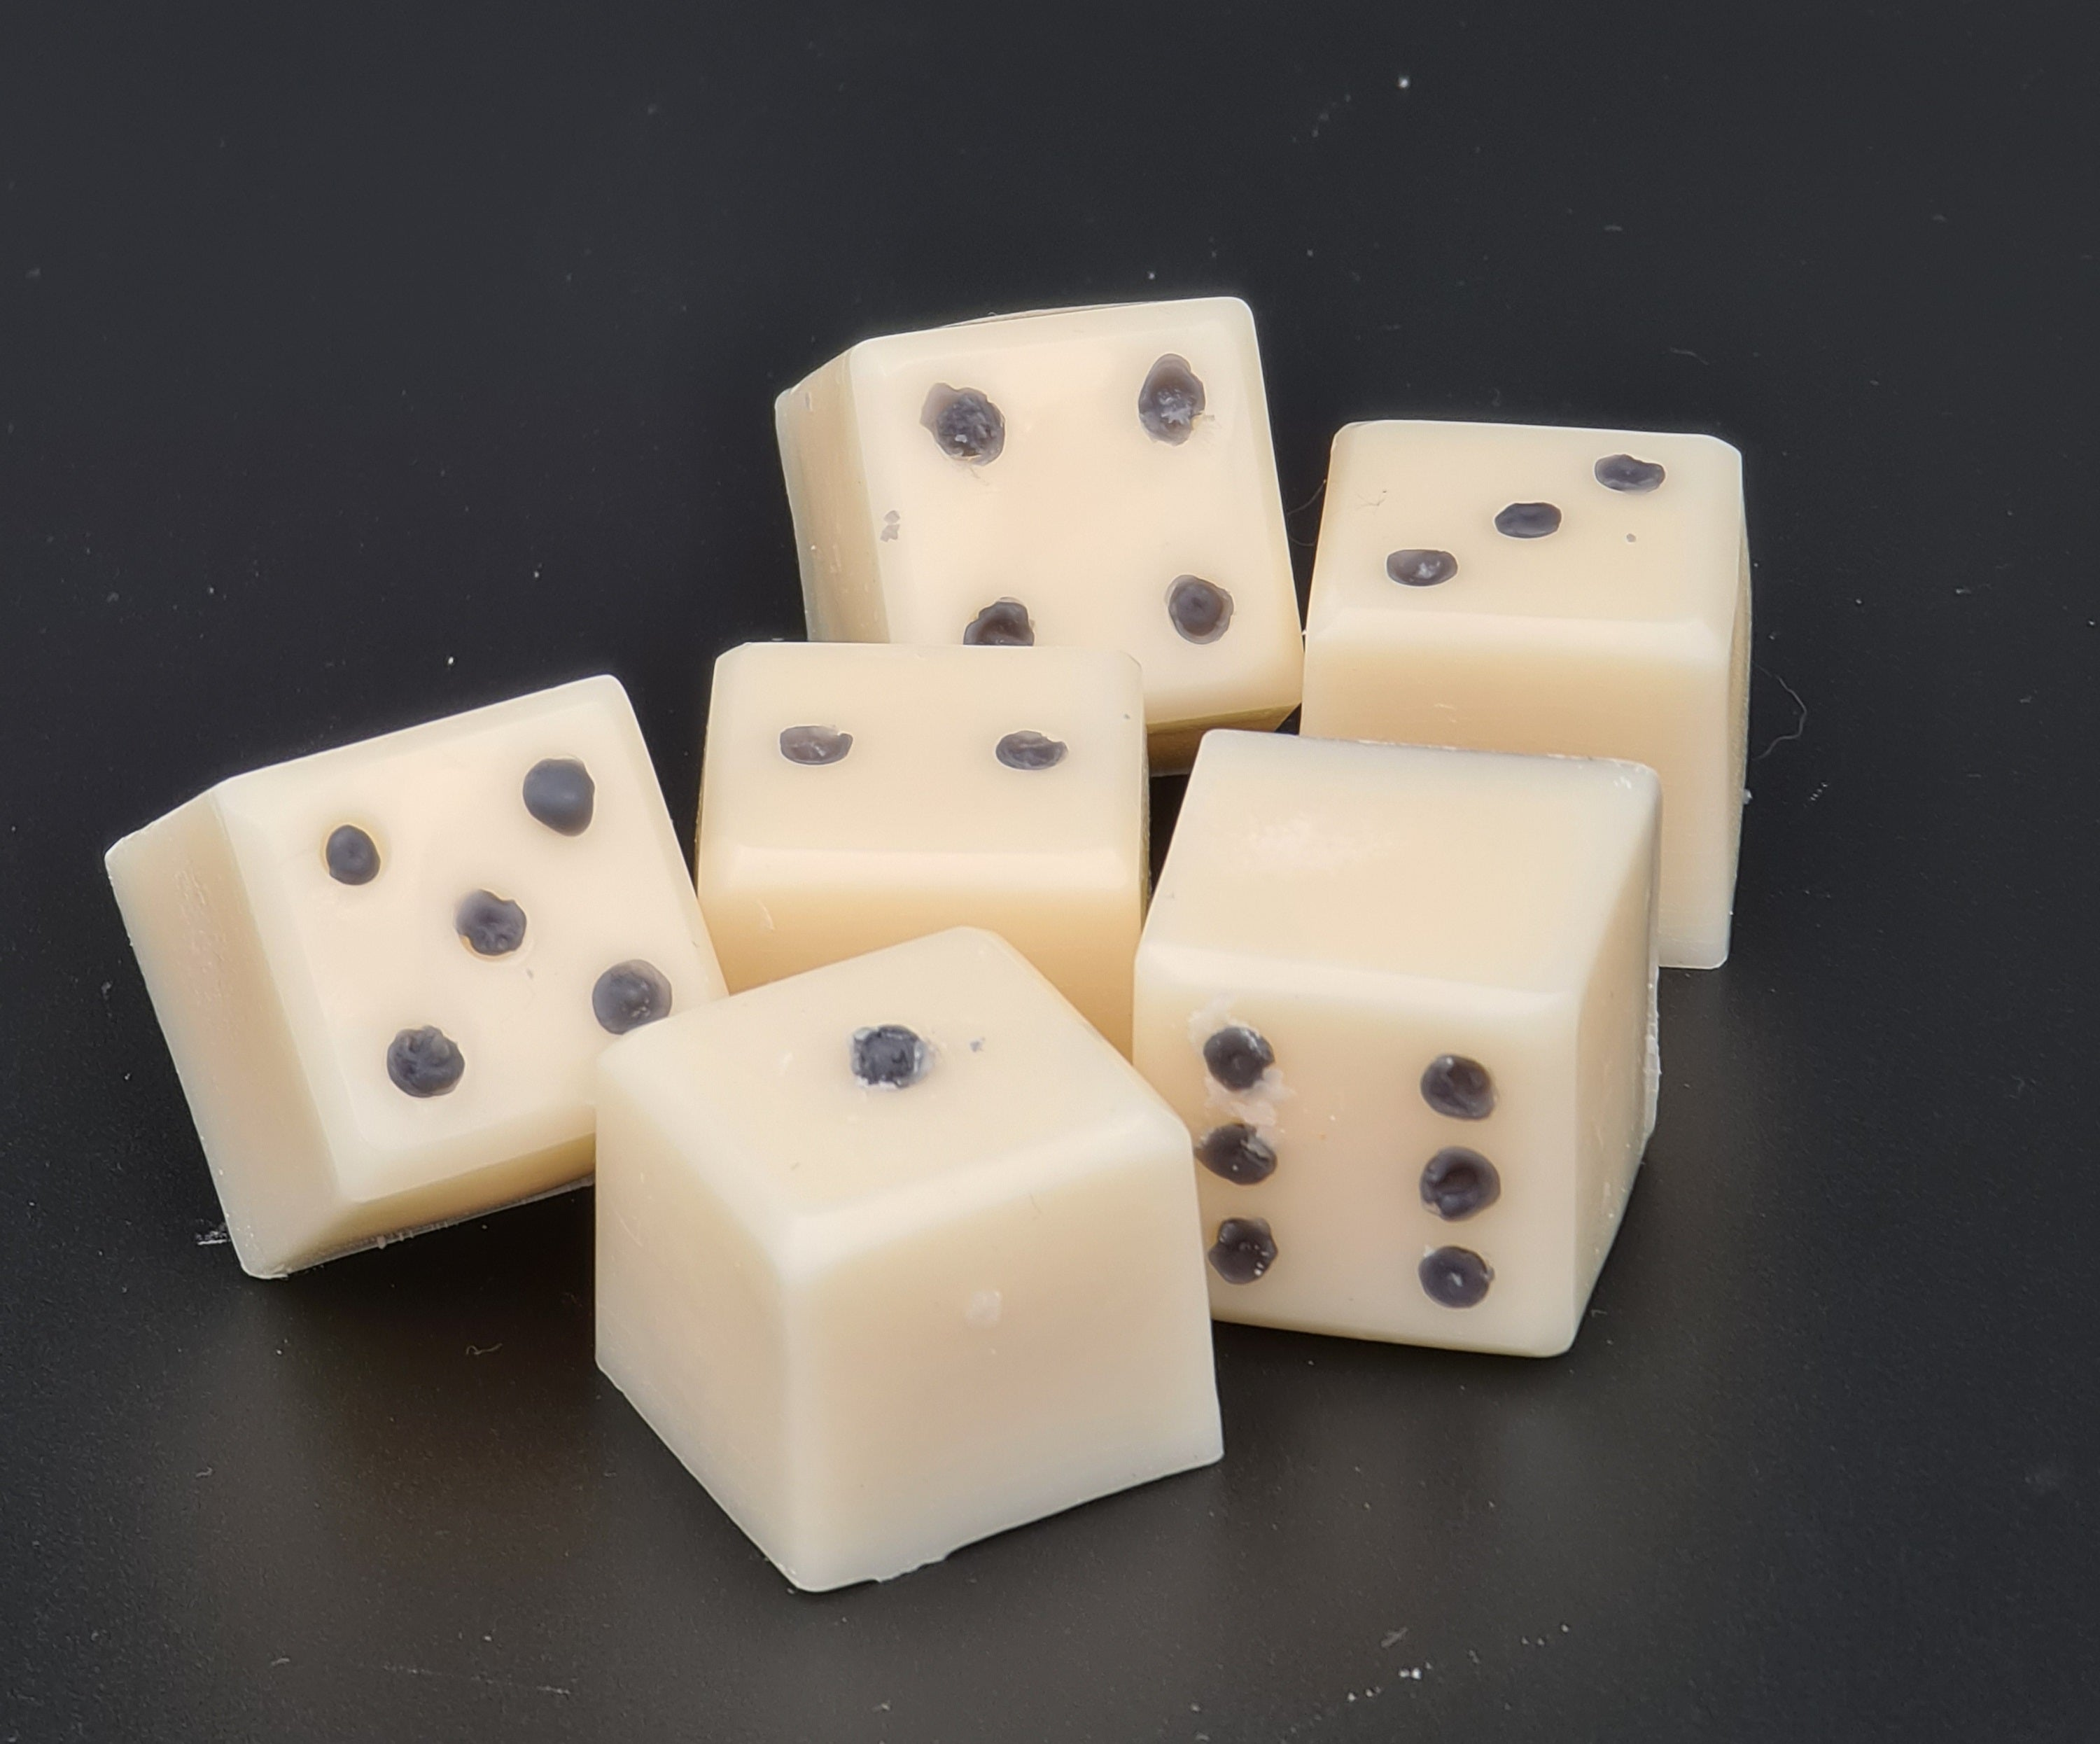 Dice melts